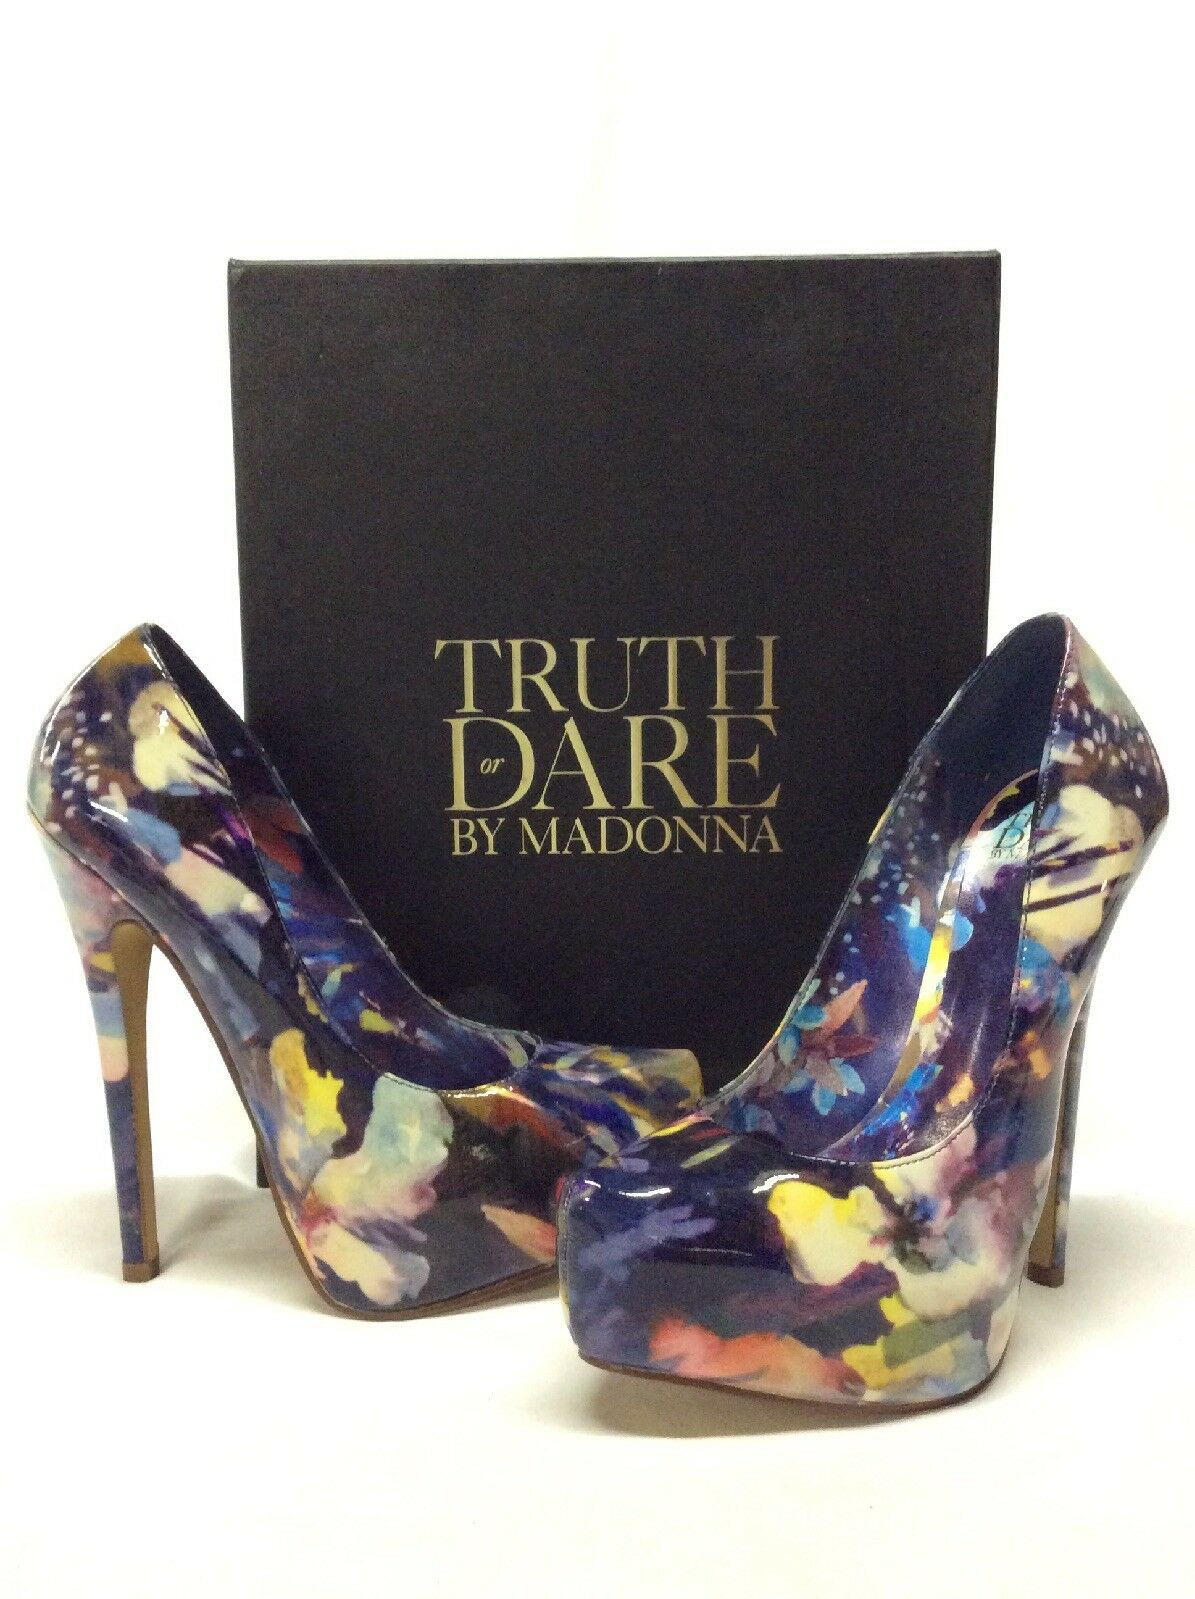 Ultimo 2018 Truth Or Dare By Madonna Platform Heels Pumps, Navy Dimensione Dimensione Dimensione 5.5  nessun minimo